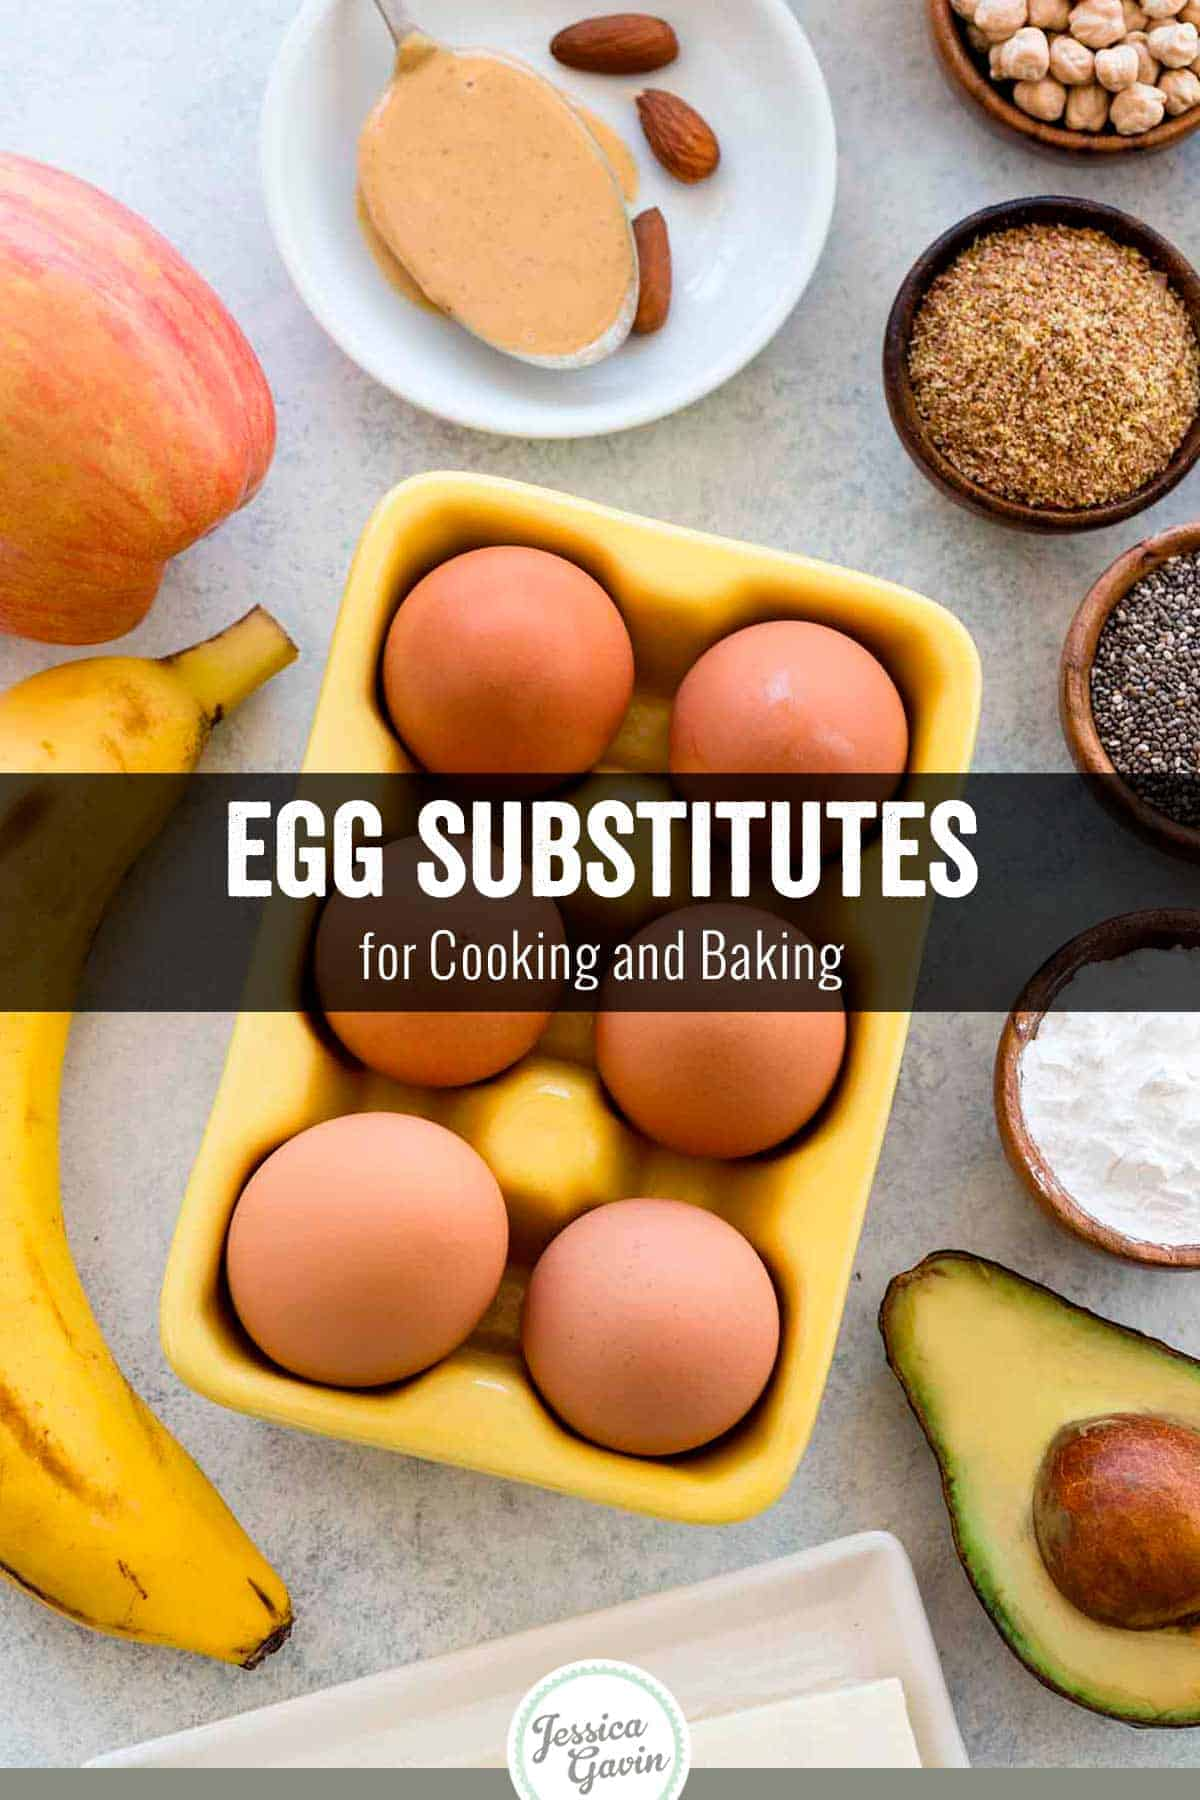 Finding effective egg substitutes can be a challenge, especially for baking. However, the good news is that many egg replacement options can provide similar functionality to the real thing. This guide offers alternative egg choices and how to use them in recipes. #eggreplacer #eggsubstitutes